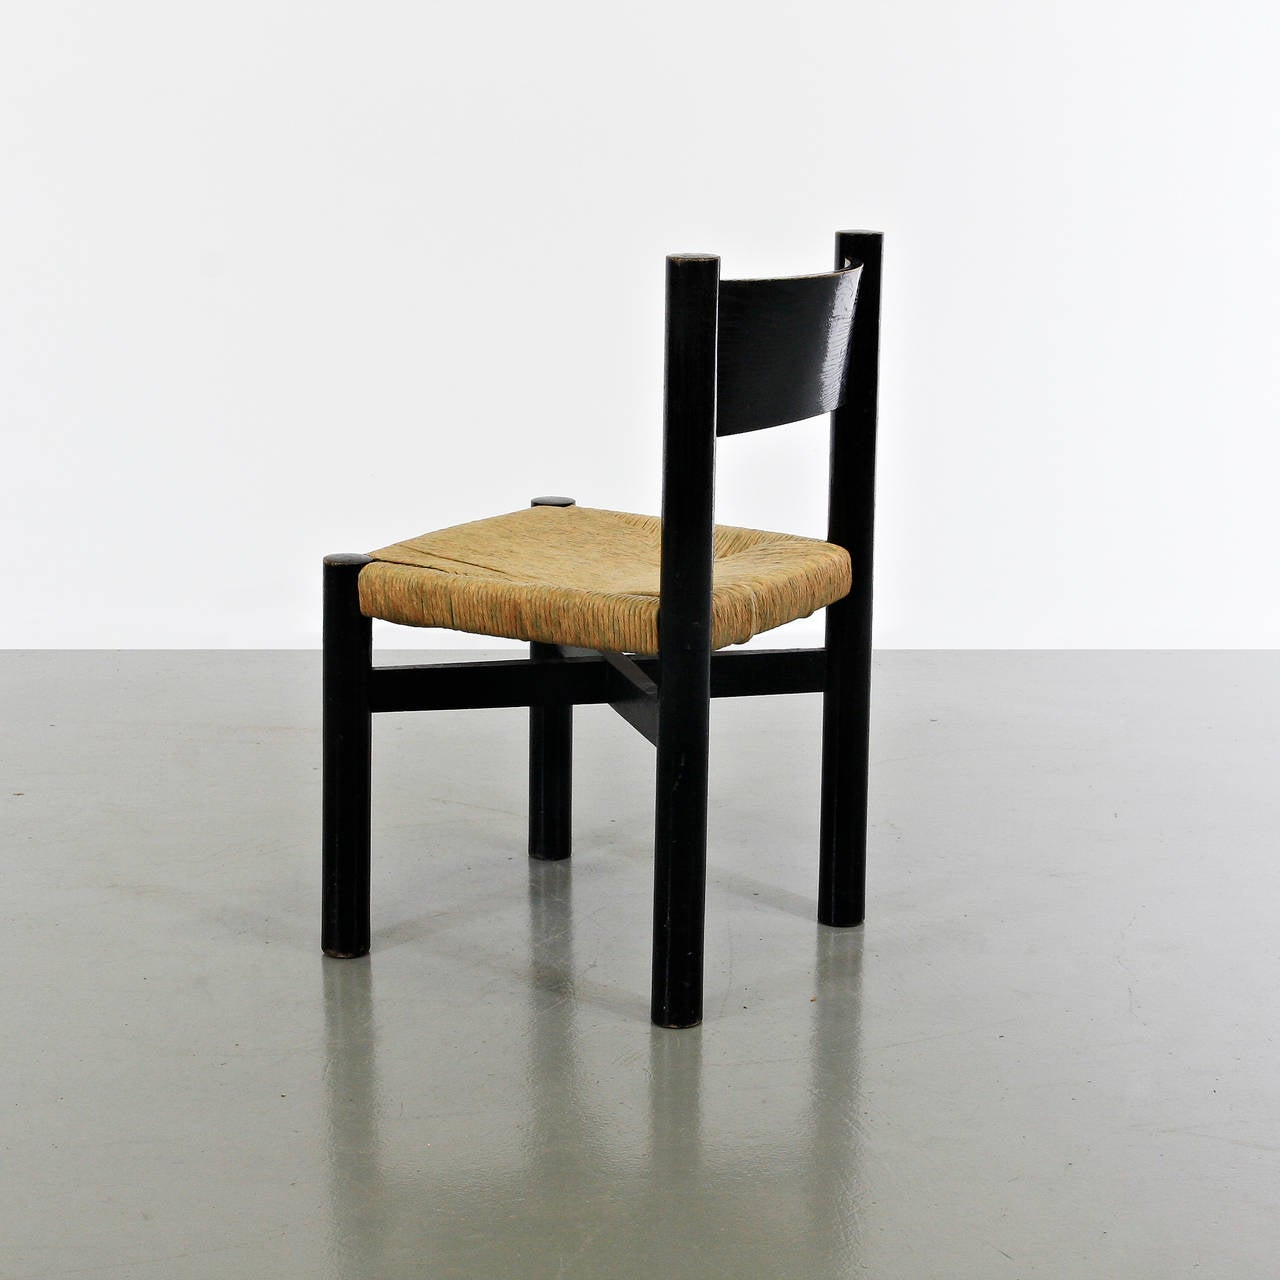 Dinning chair, model Meribel, designed by Charlotte Perriand around 1950.